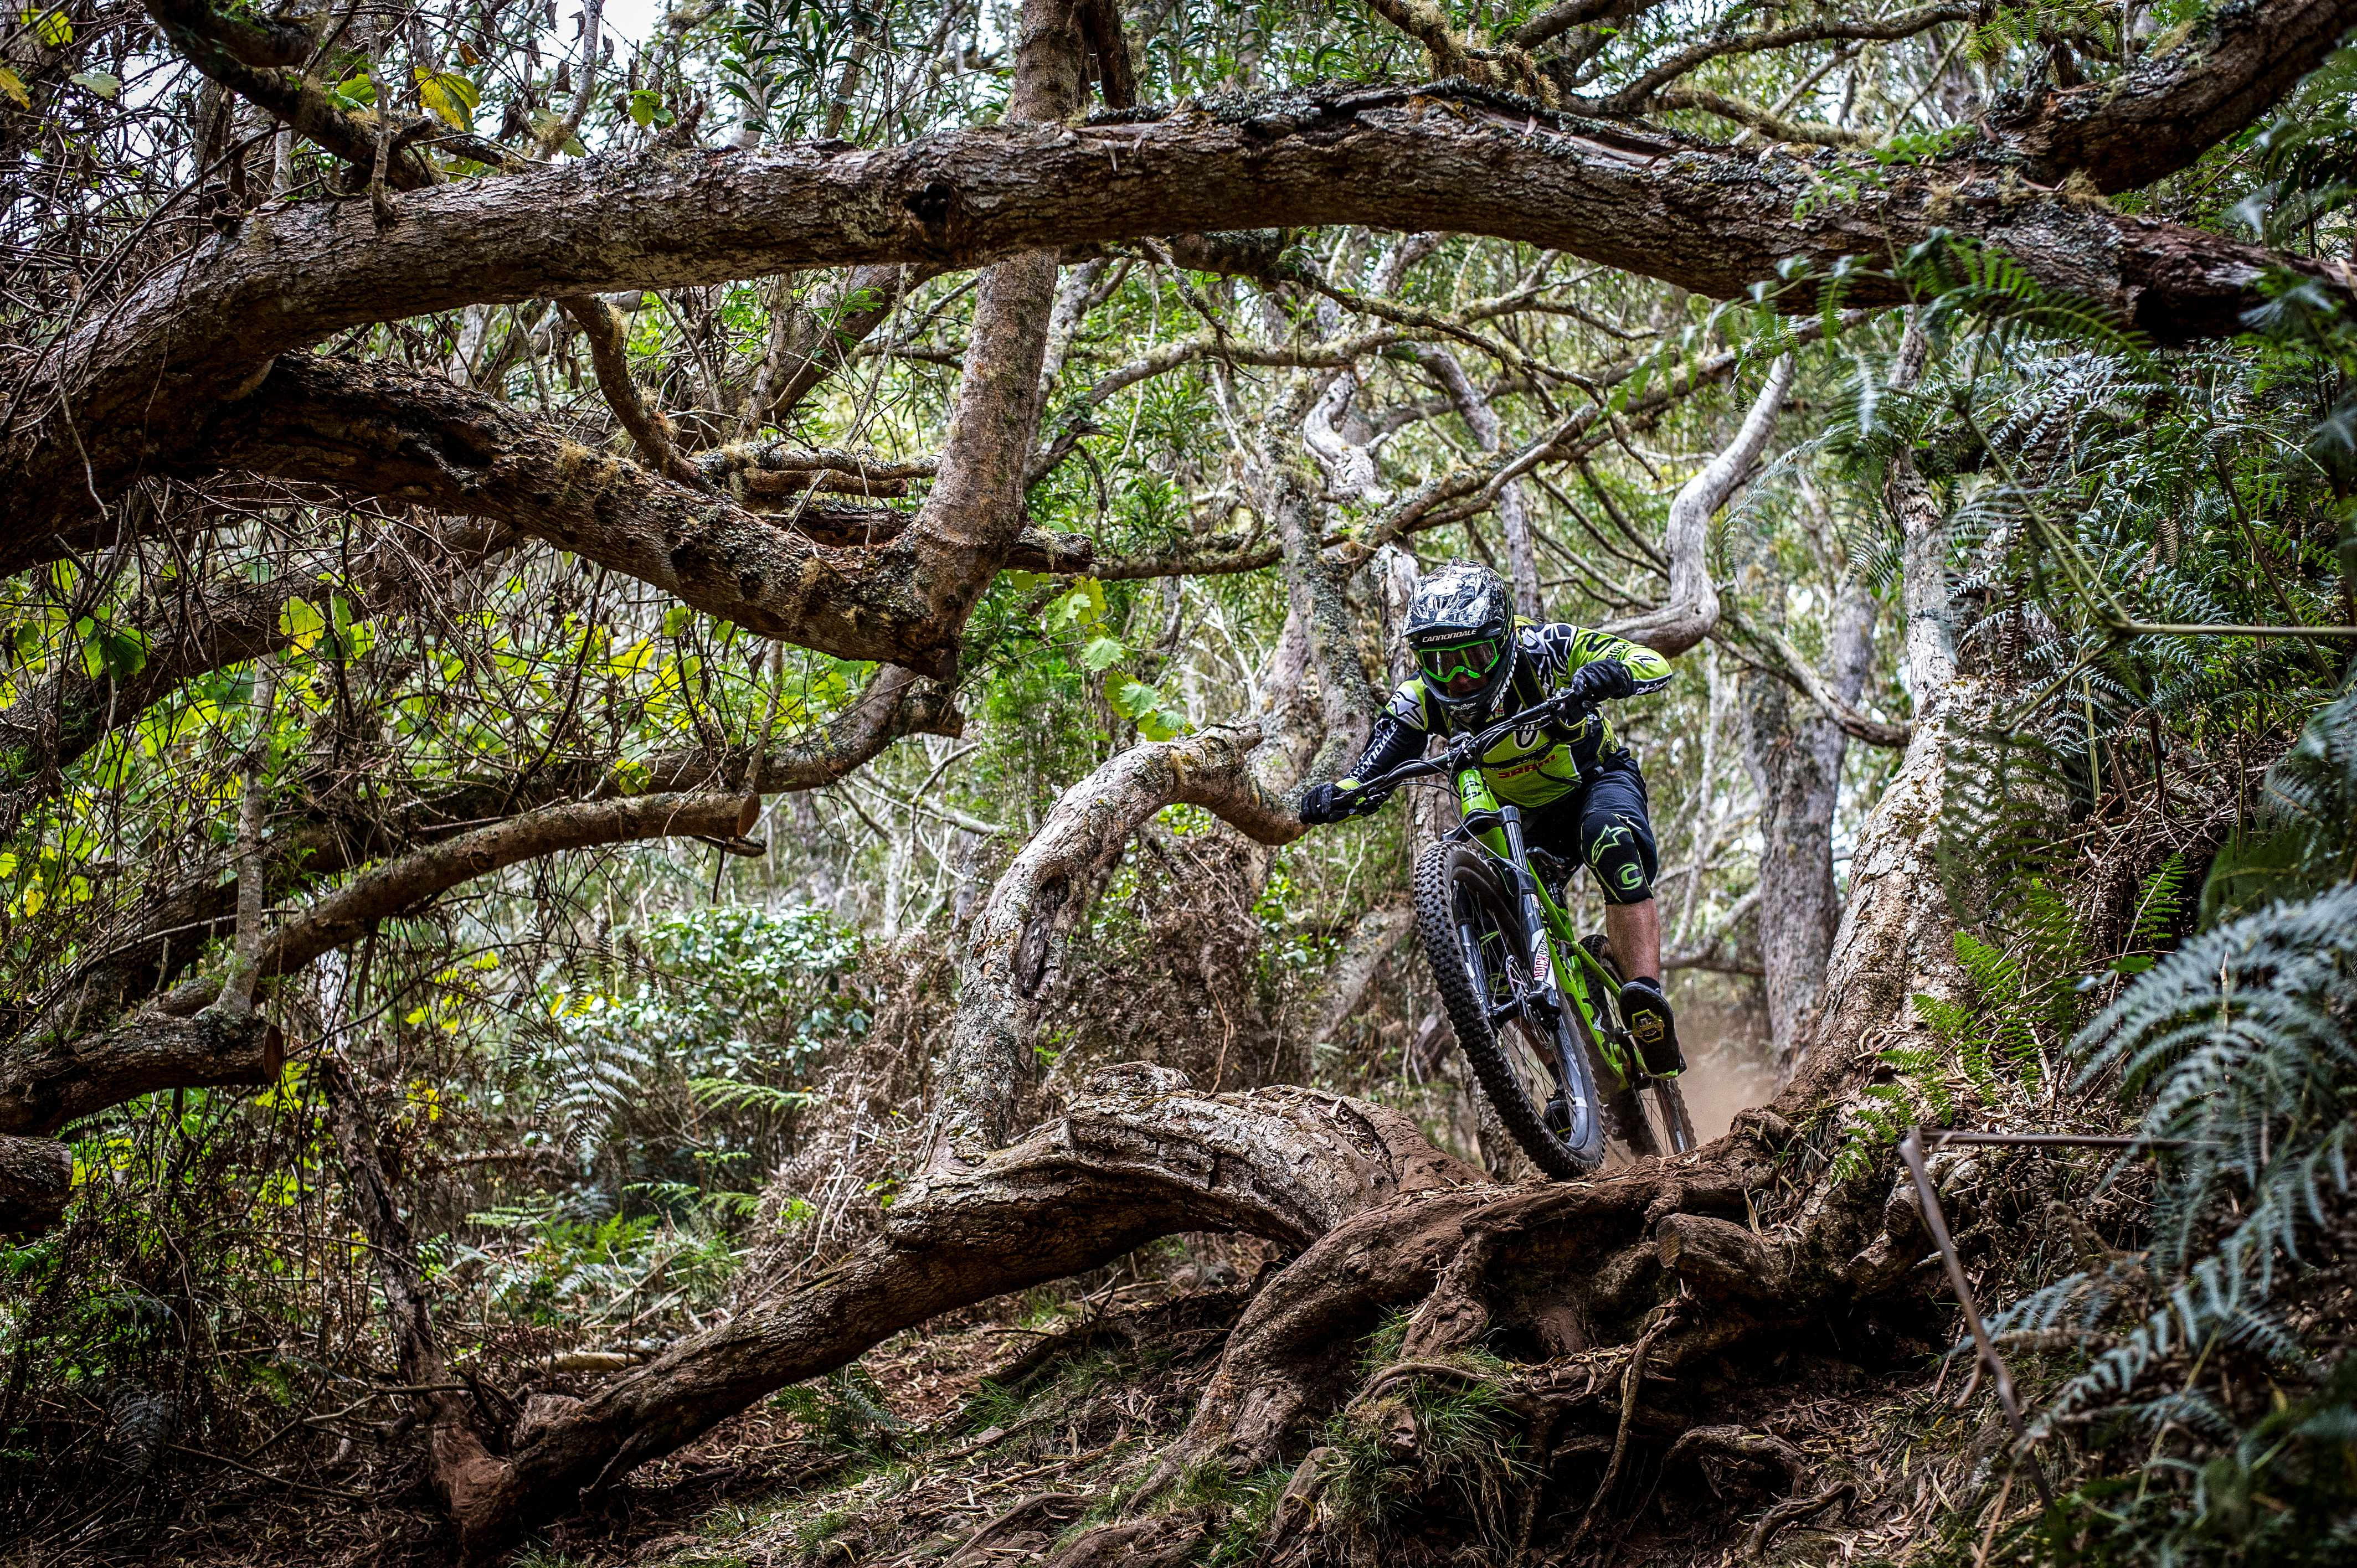 Gnarly roots and trees on reunion island